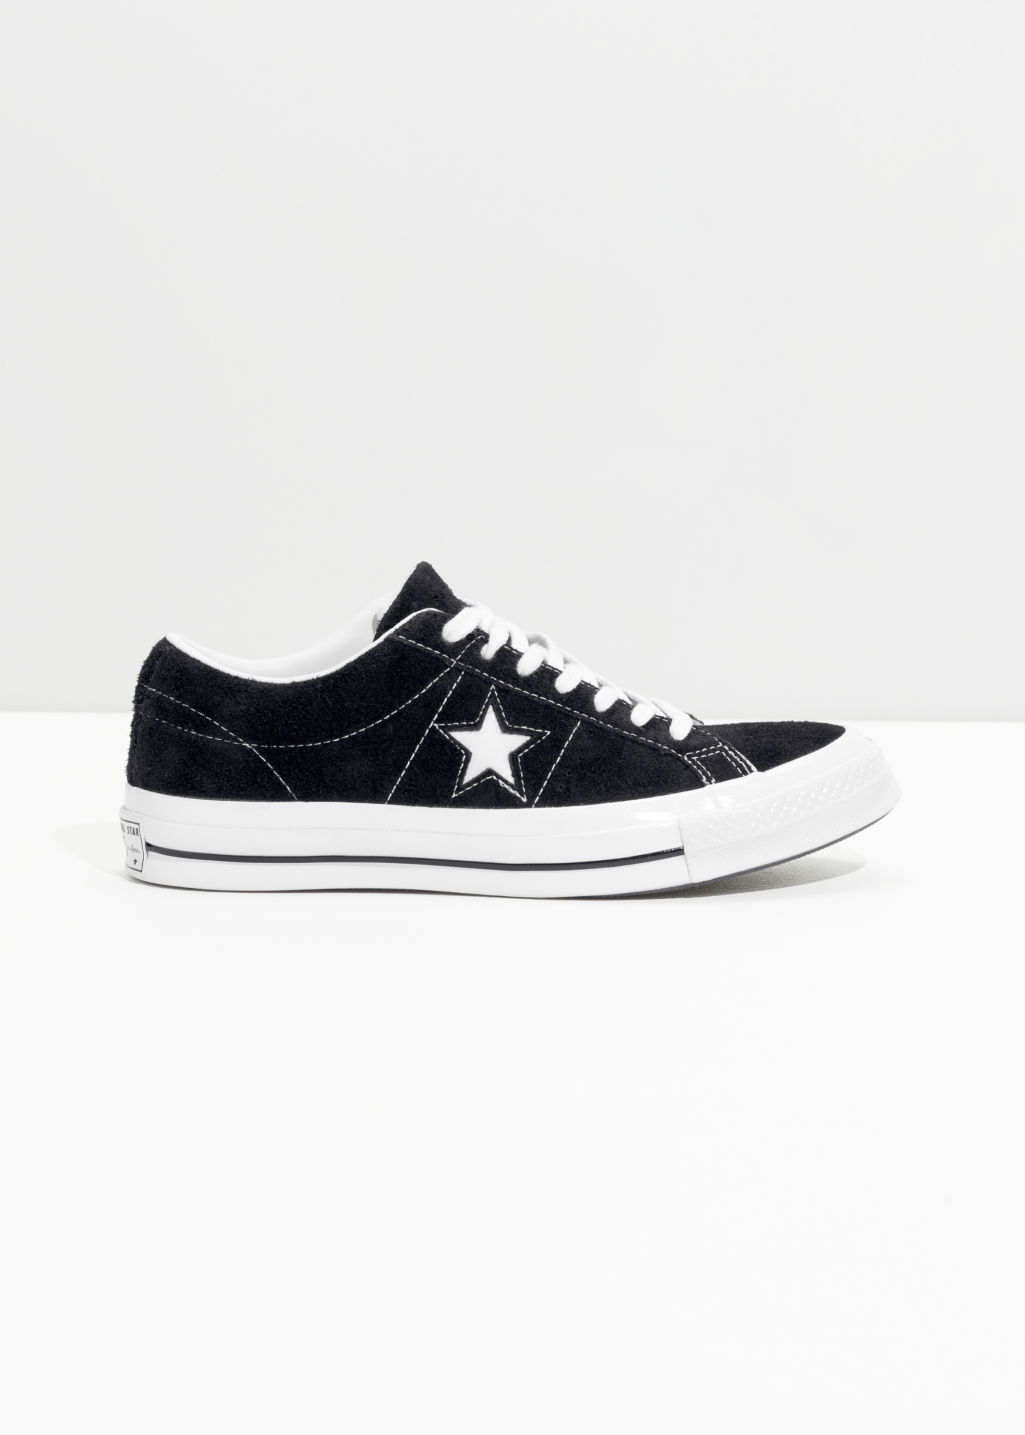 f92526b59a83 Converse Lift Ripple Low - Black   Cream - Converse -   Other Stories